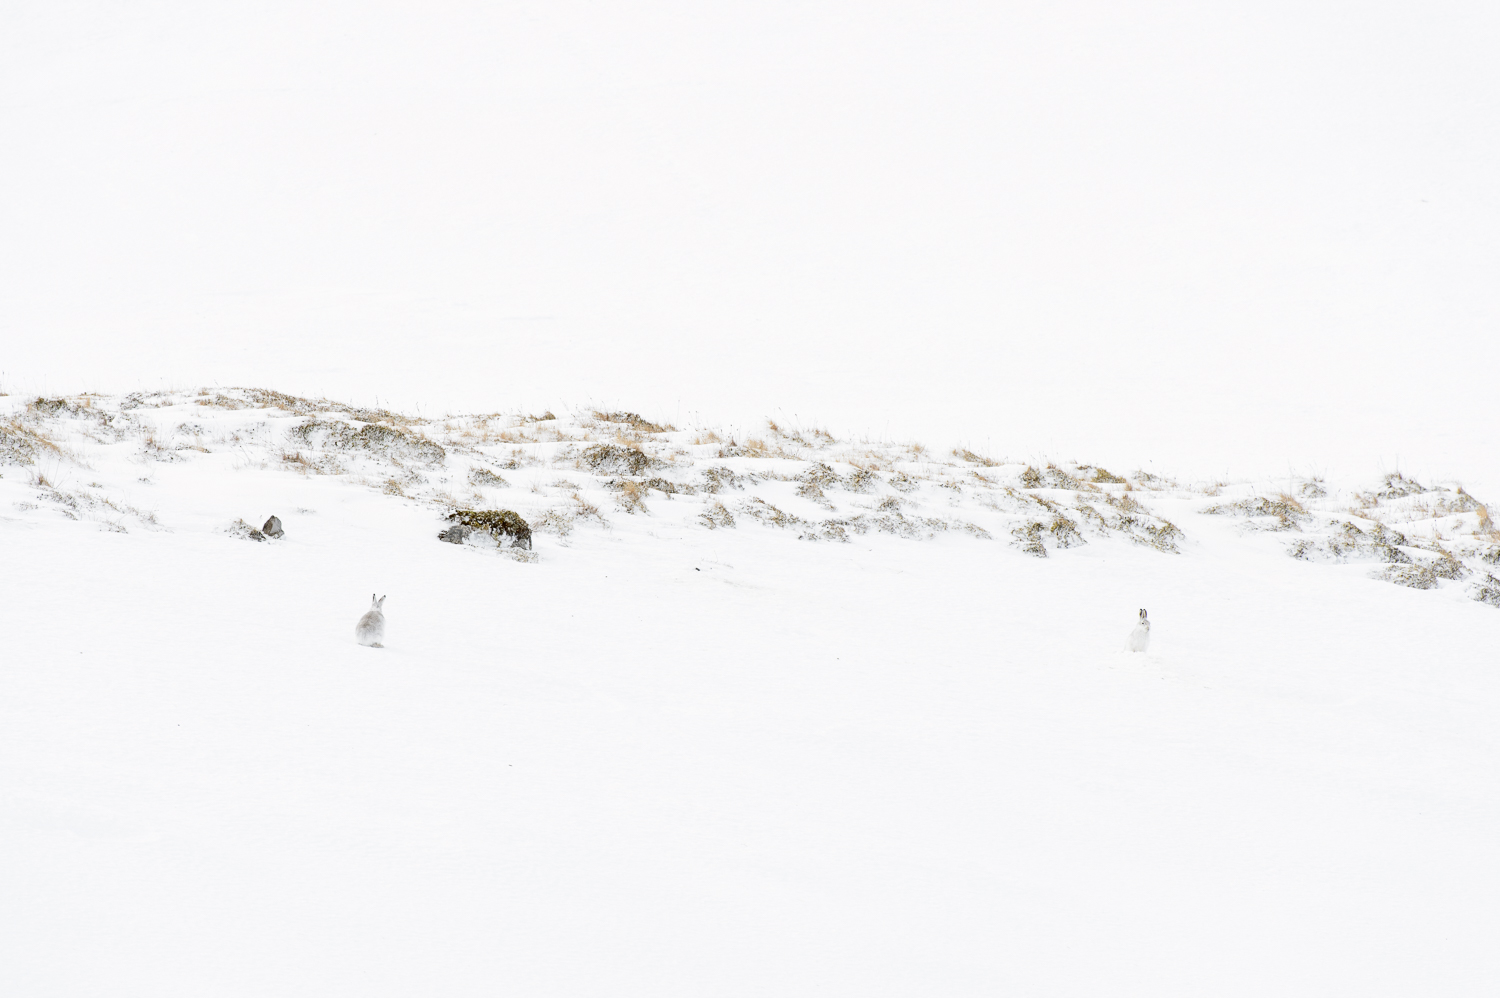 Mountain Hare Courtship